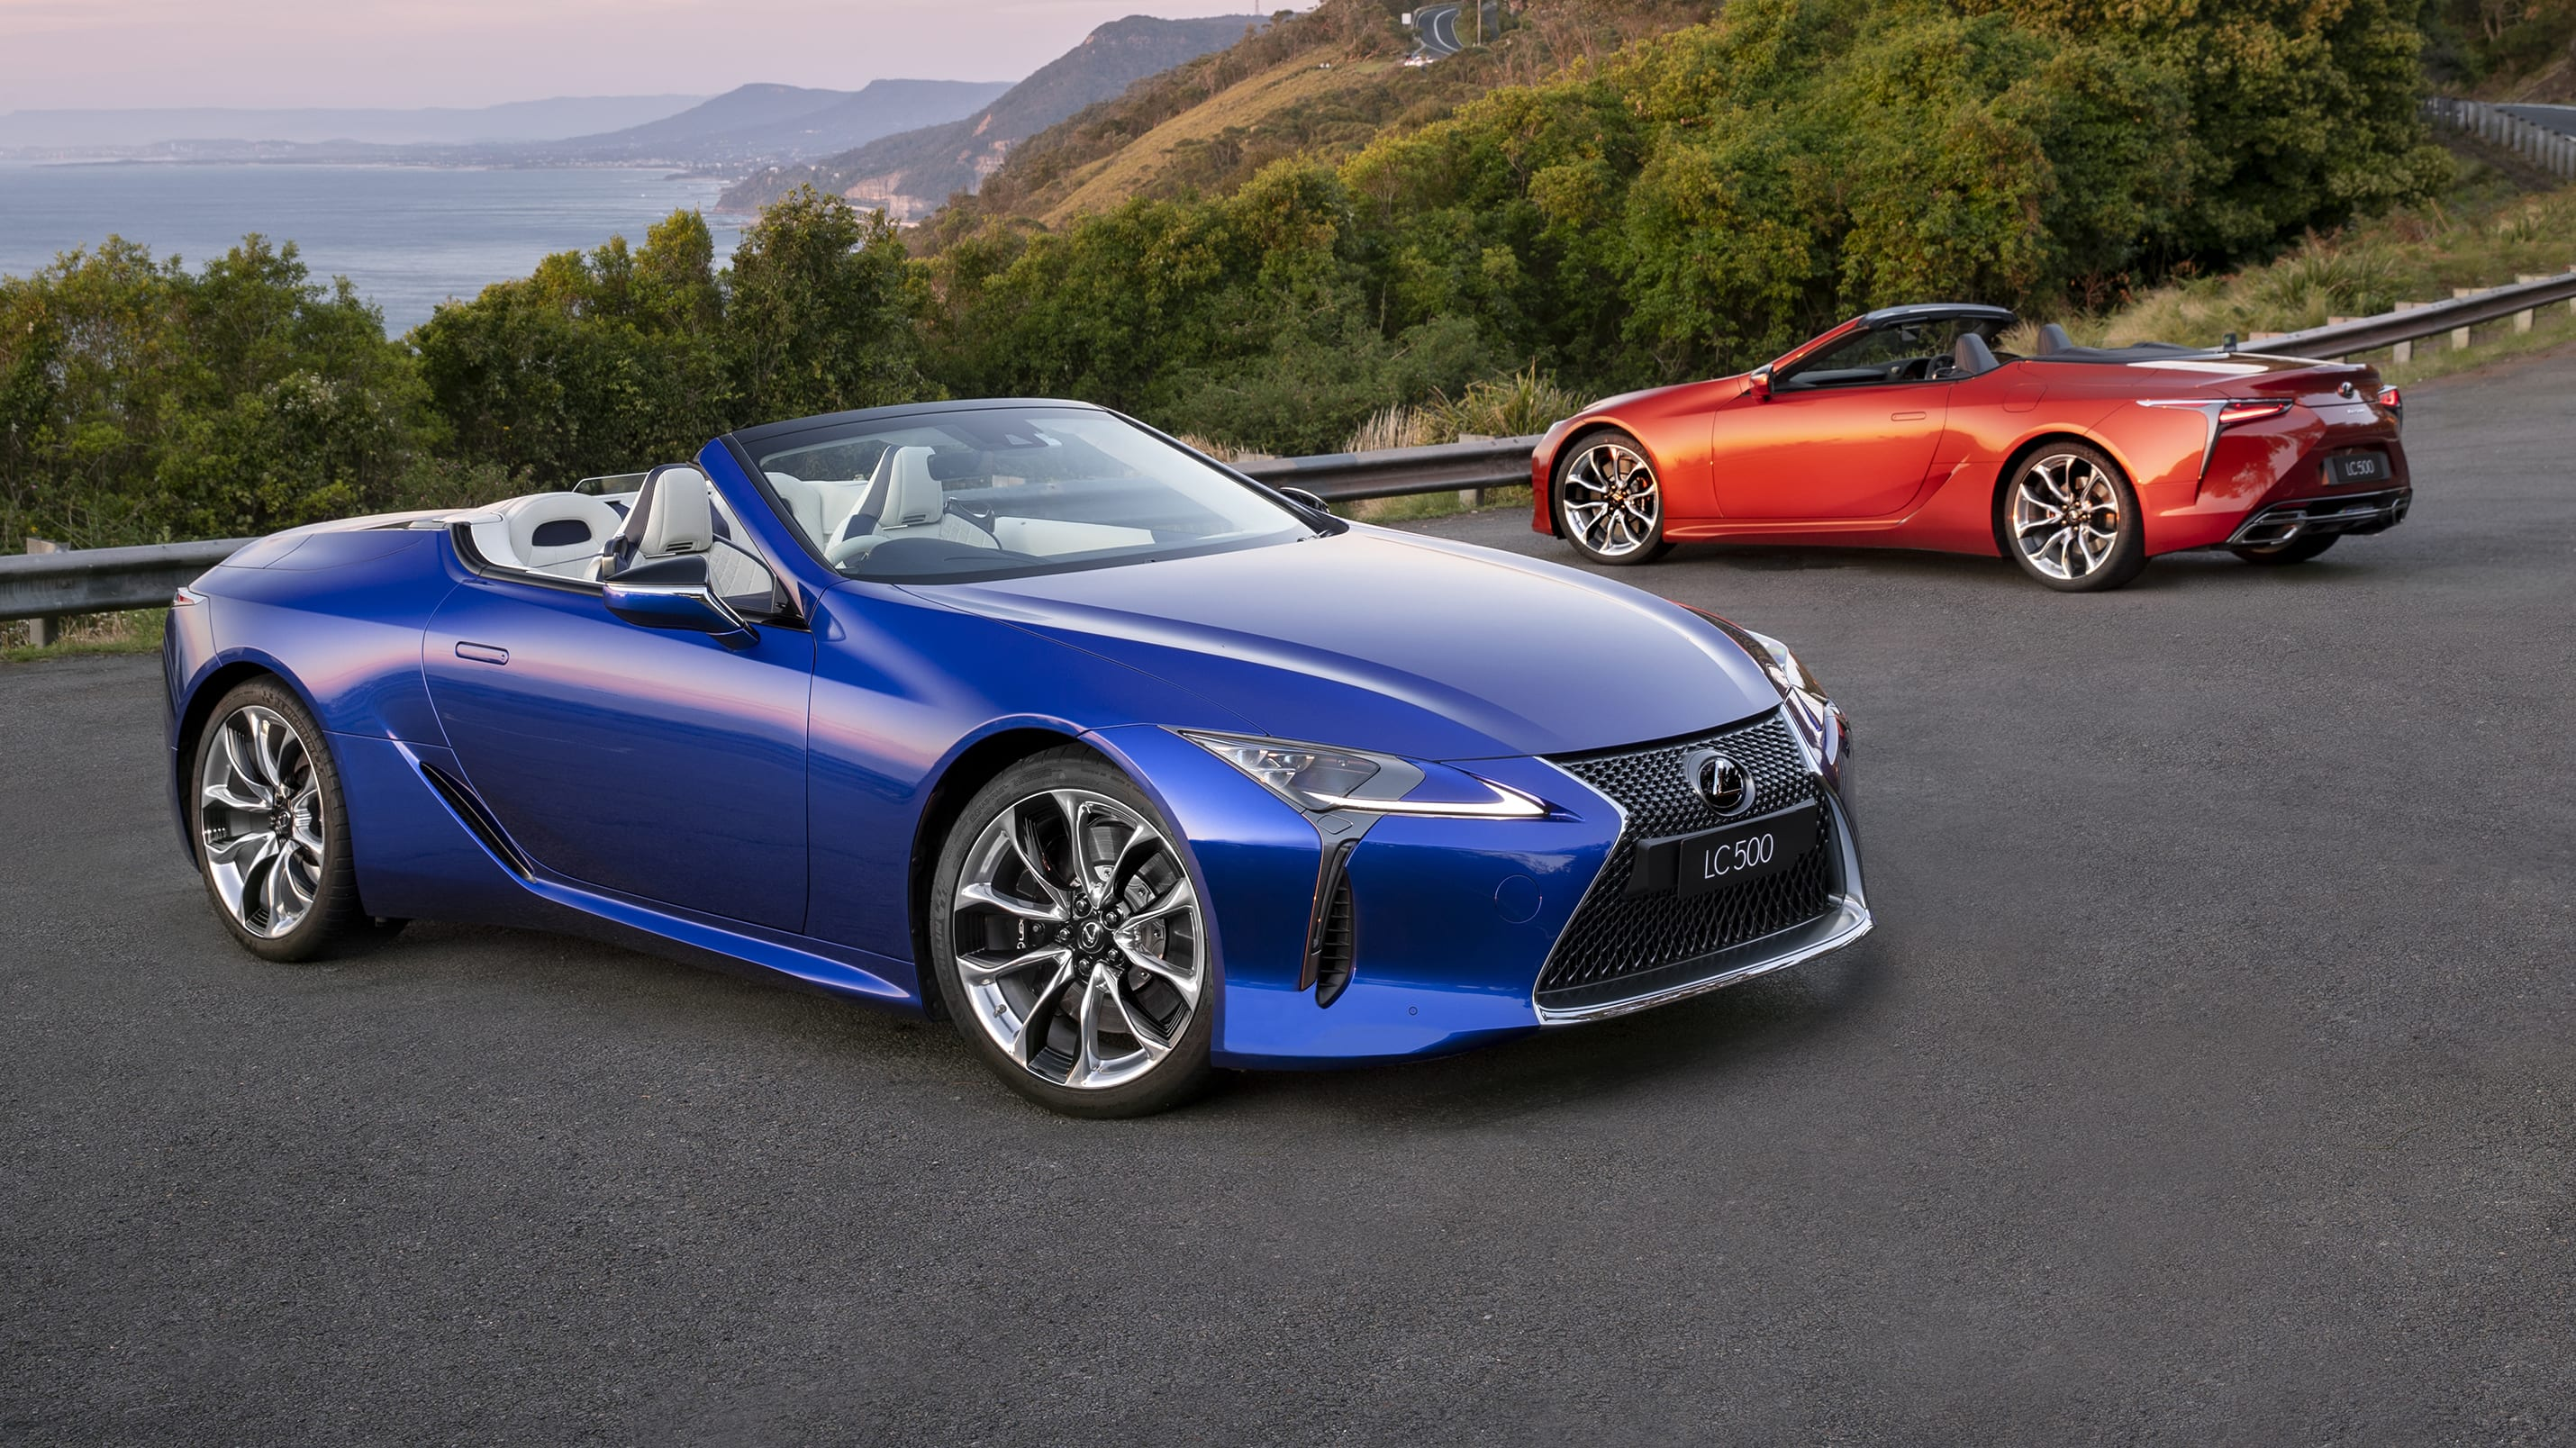 Lexus LC500 convertible – beautifully crafted